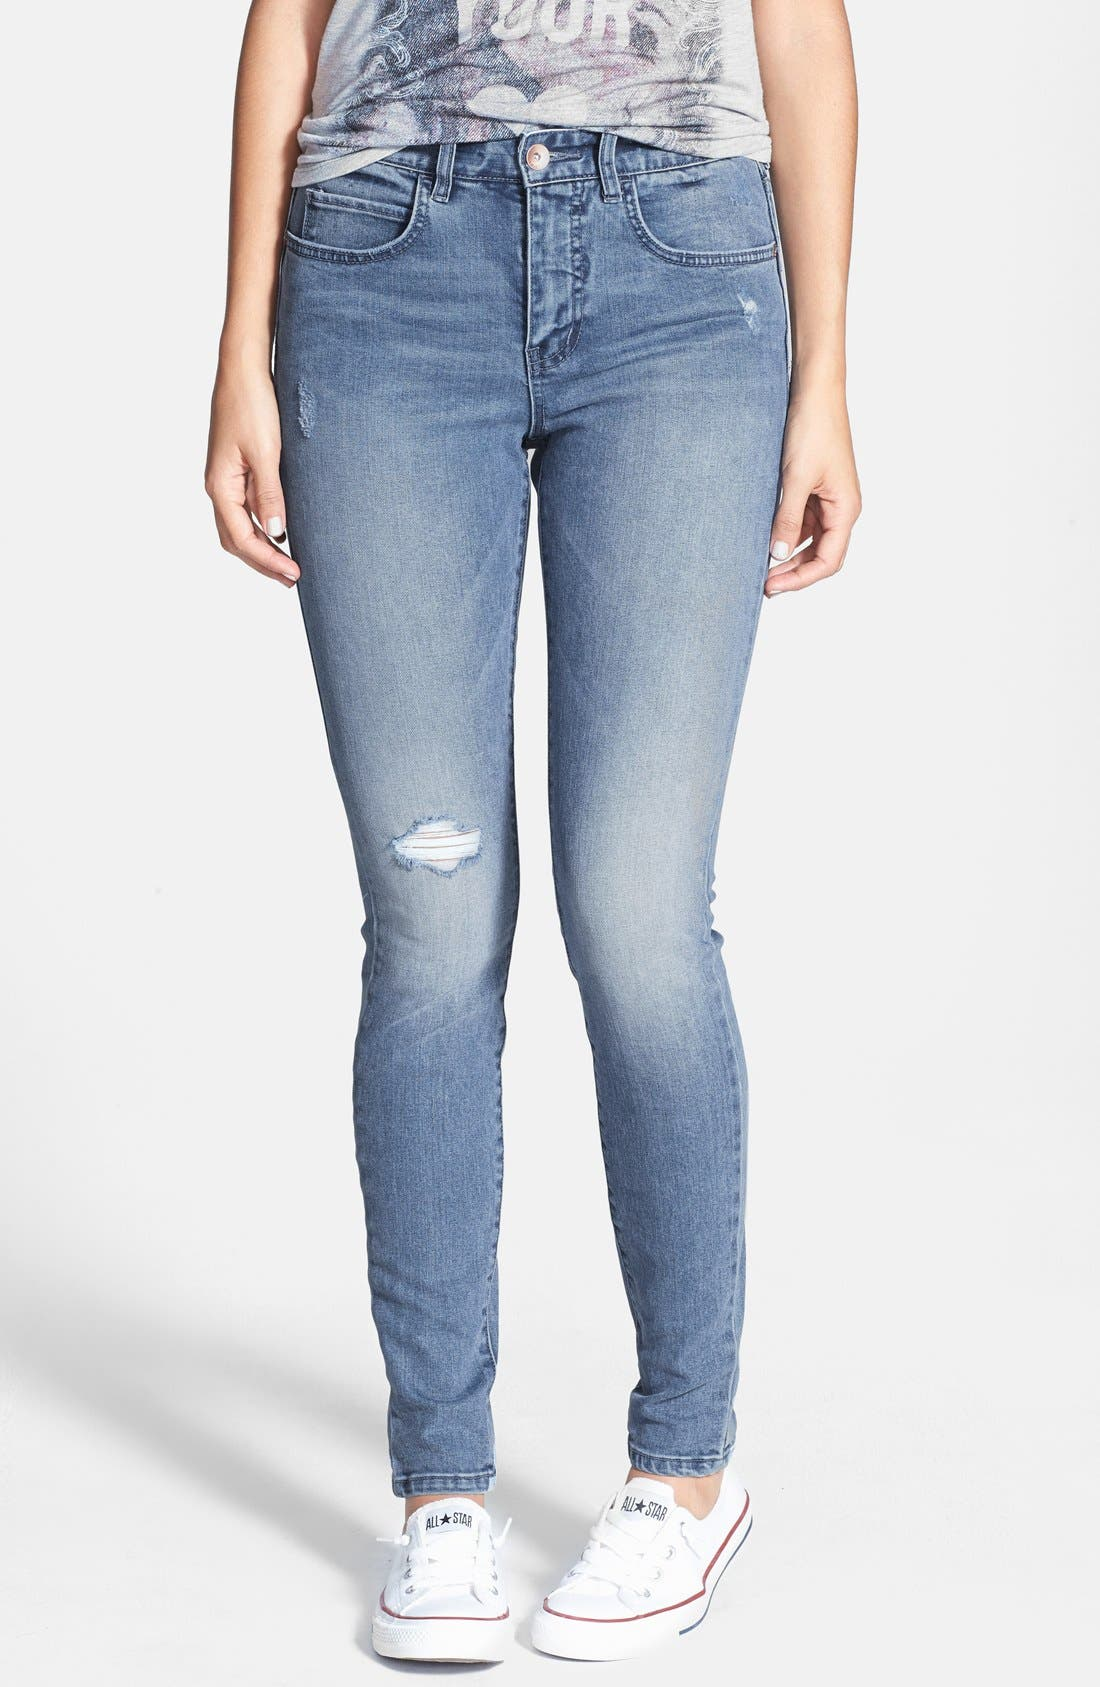 Alternate Image 1 Selected - Billabong 'Night Hawks' Skinny Jeans (Light Wash) (Juniors)